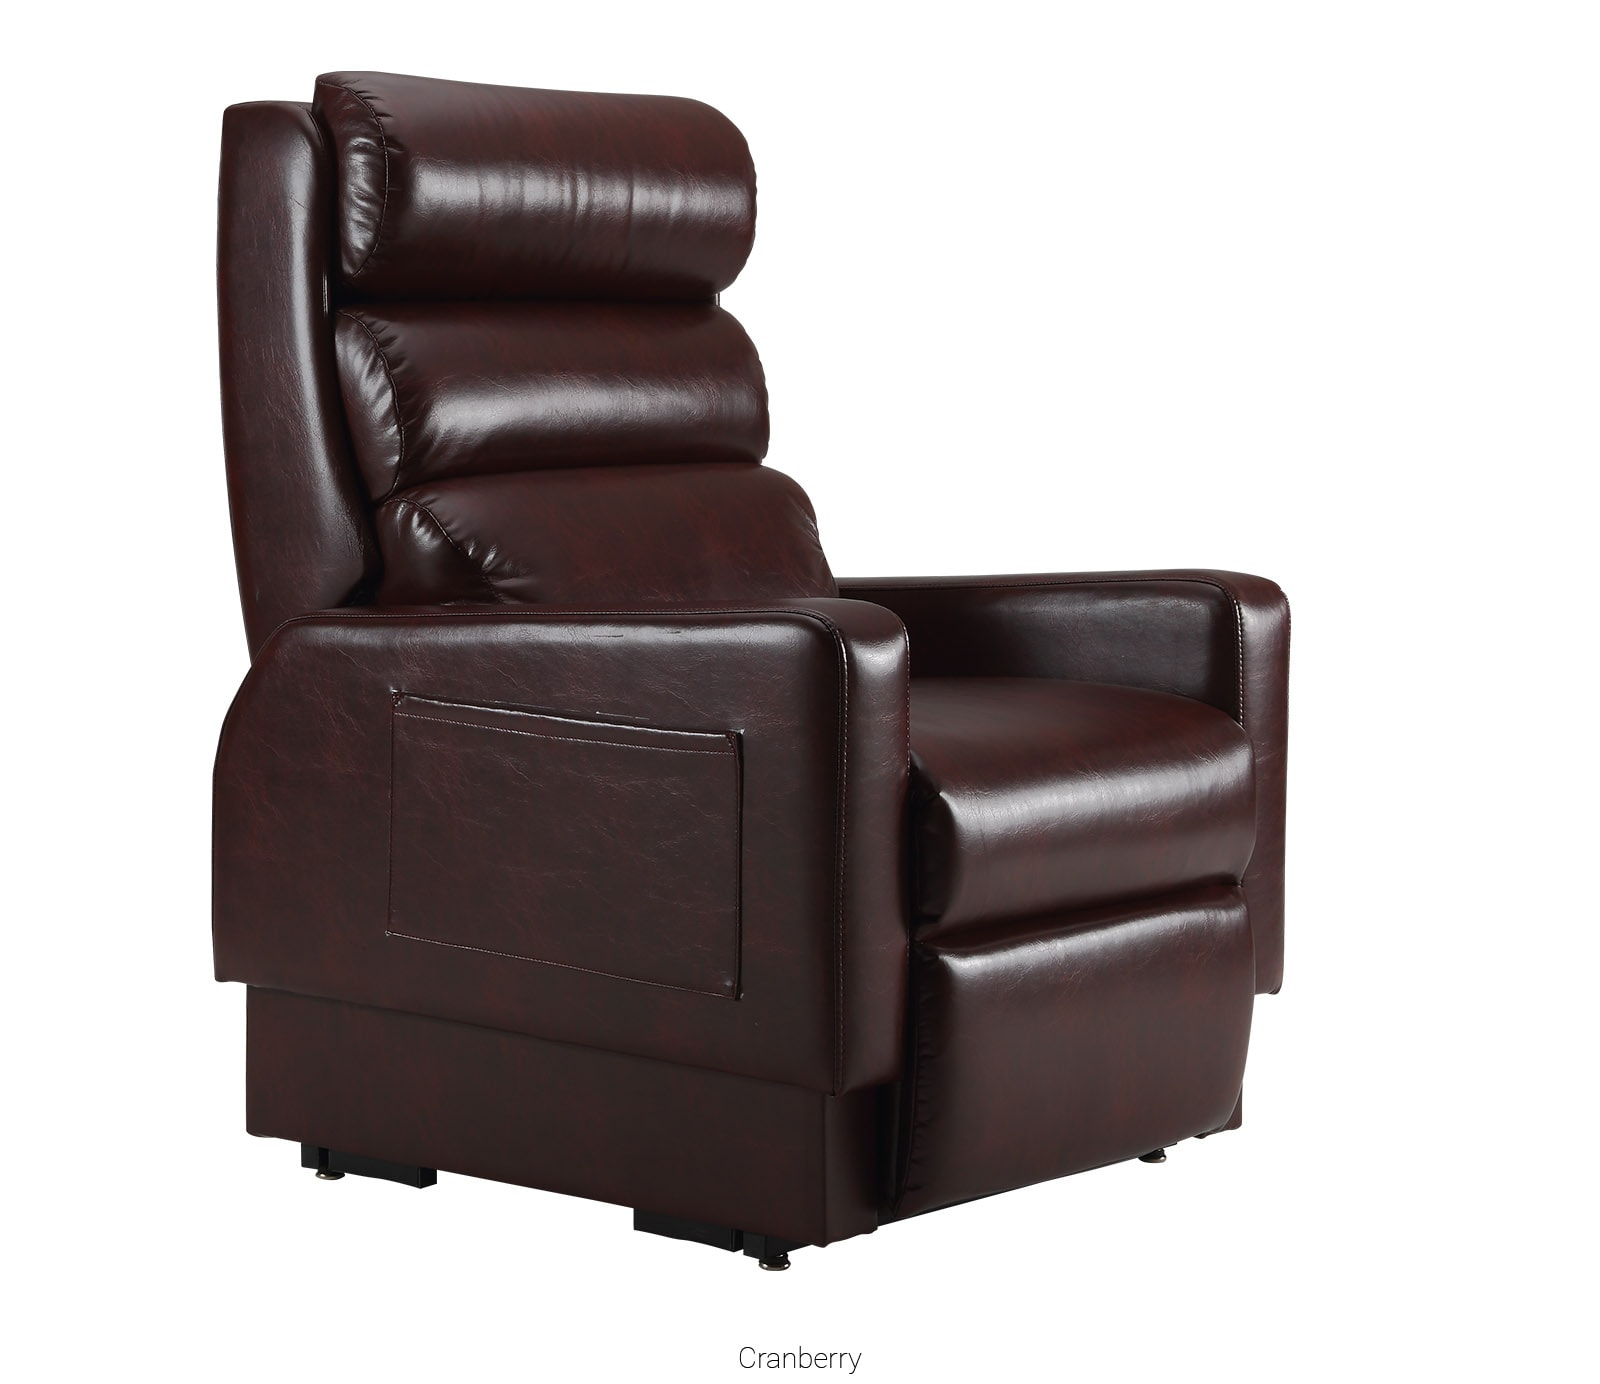 MC 520 The World First Lift Massage Chair